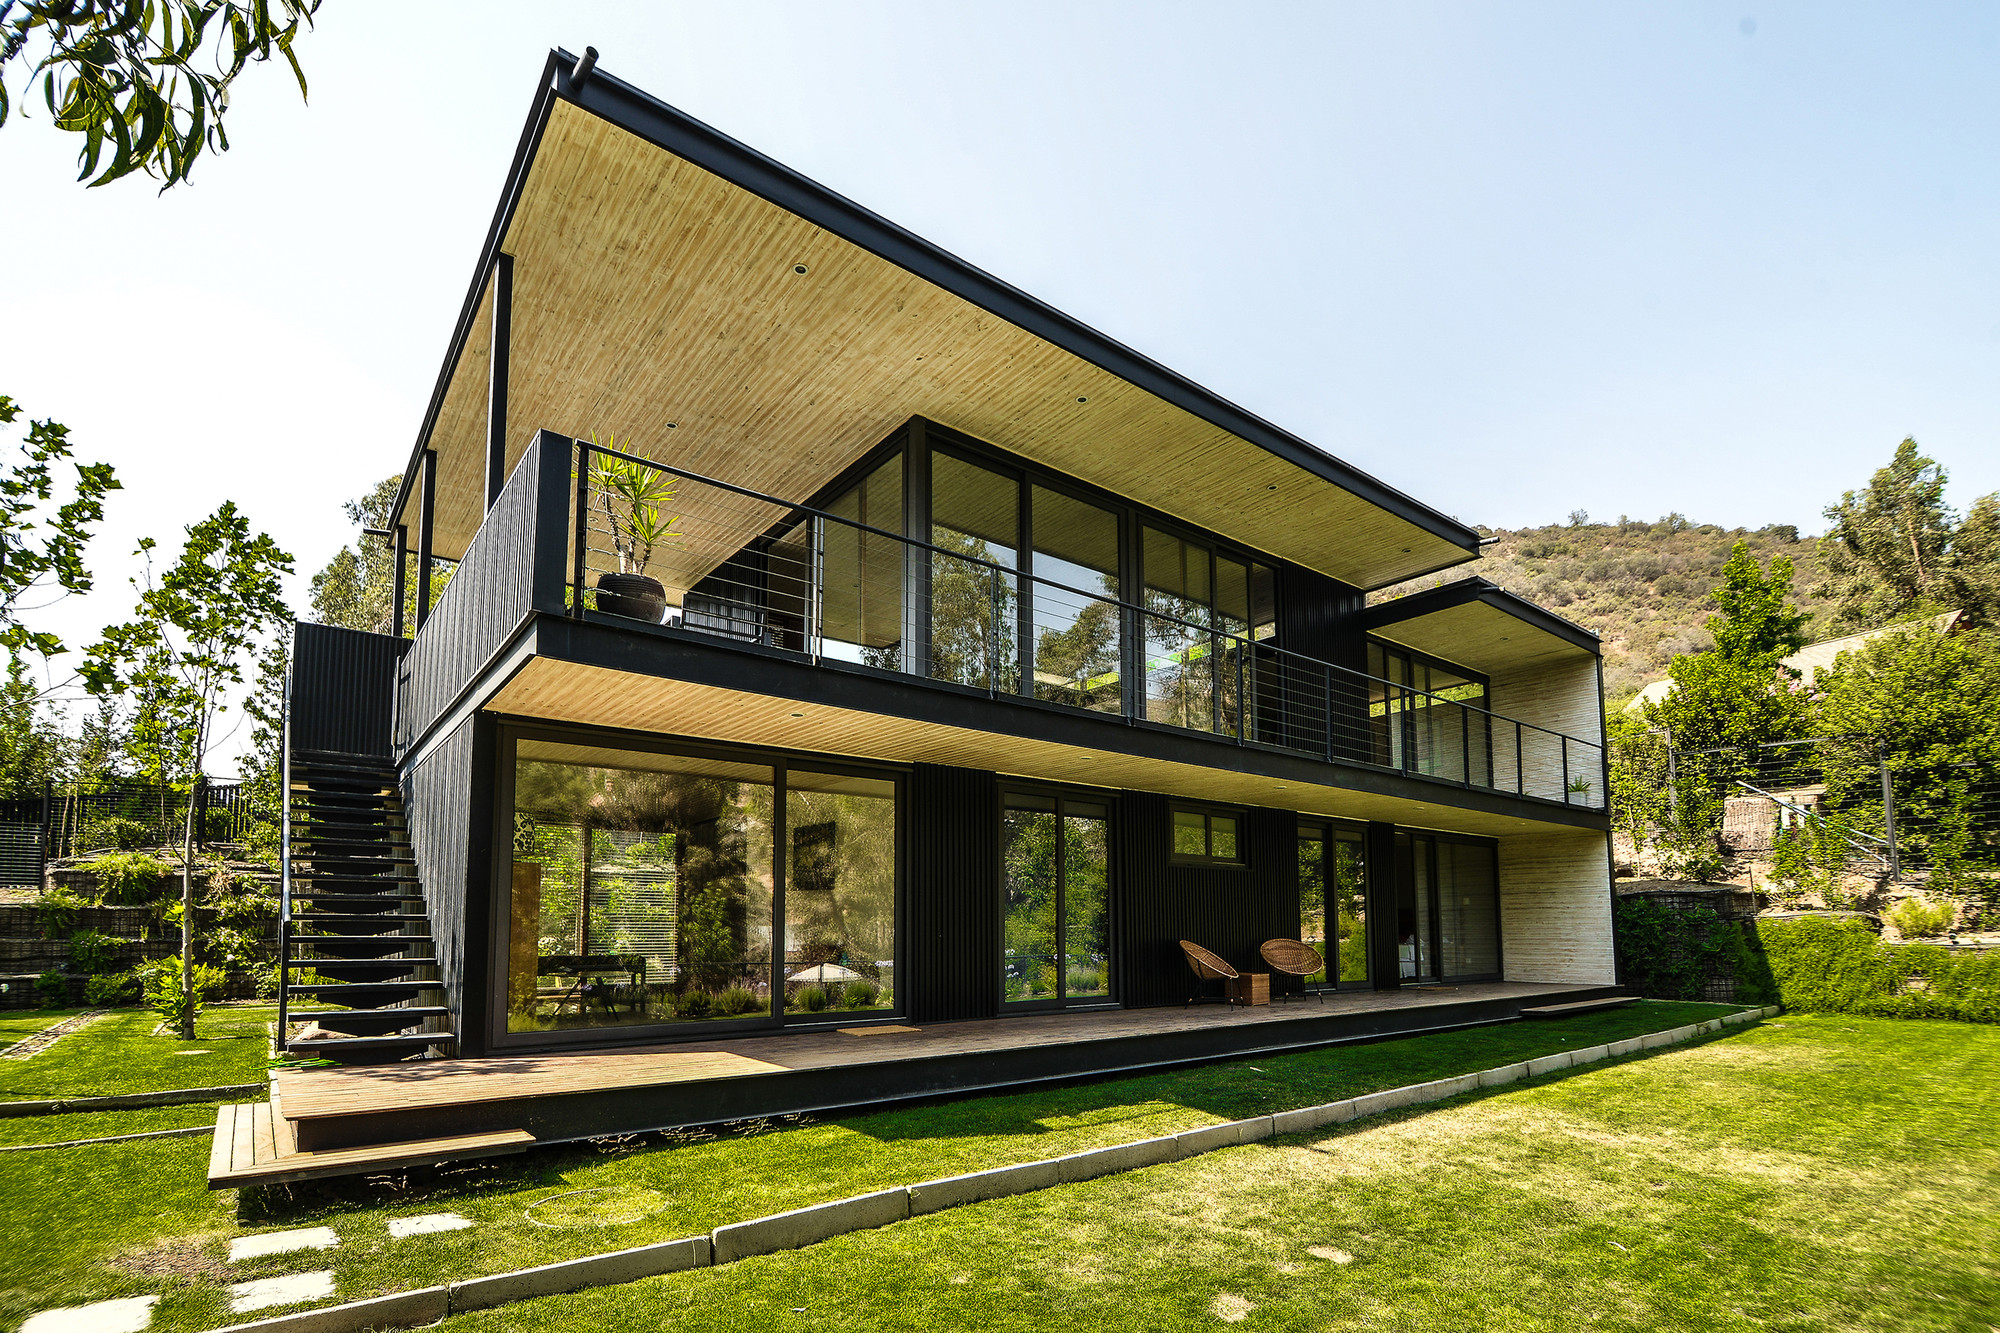 MIL House / A+D Proyectos, Courtesy of A+D Proyectos